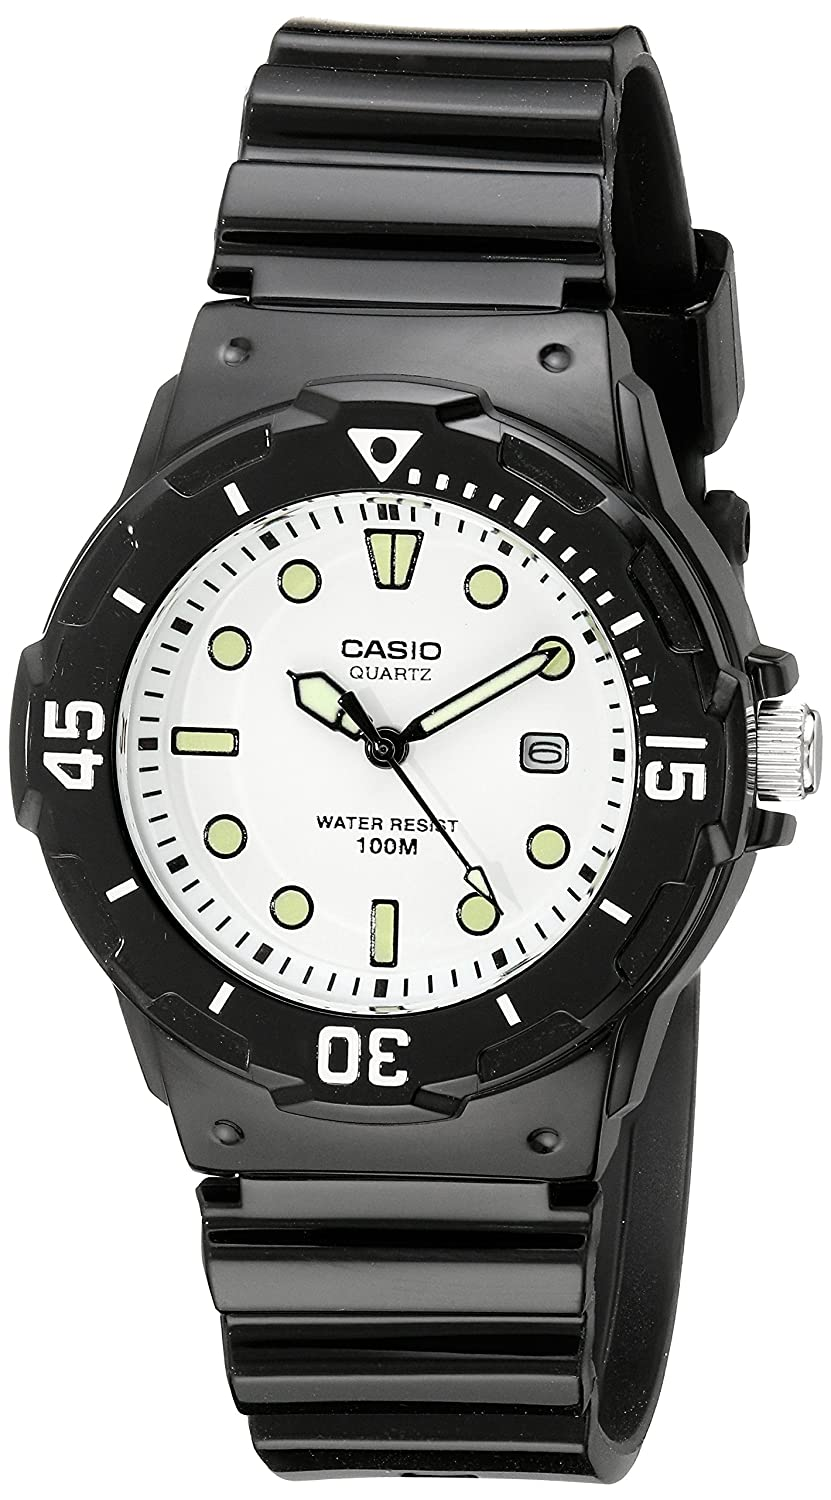 Casio Womens Lrw200h 1bvcf Classic Analog Japanese Edifice Efr546bkg1av Quartz Black Resin Watch Watches